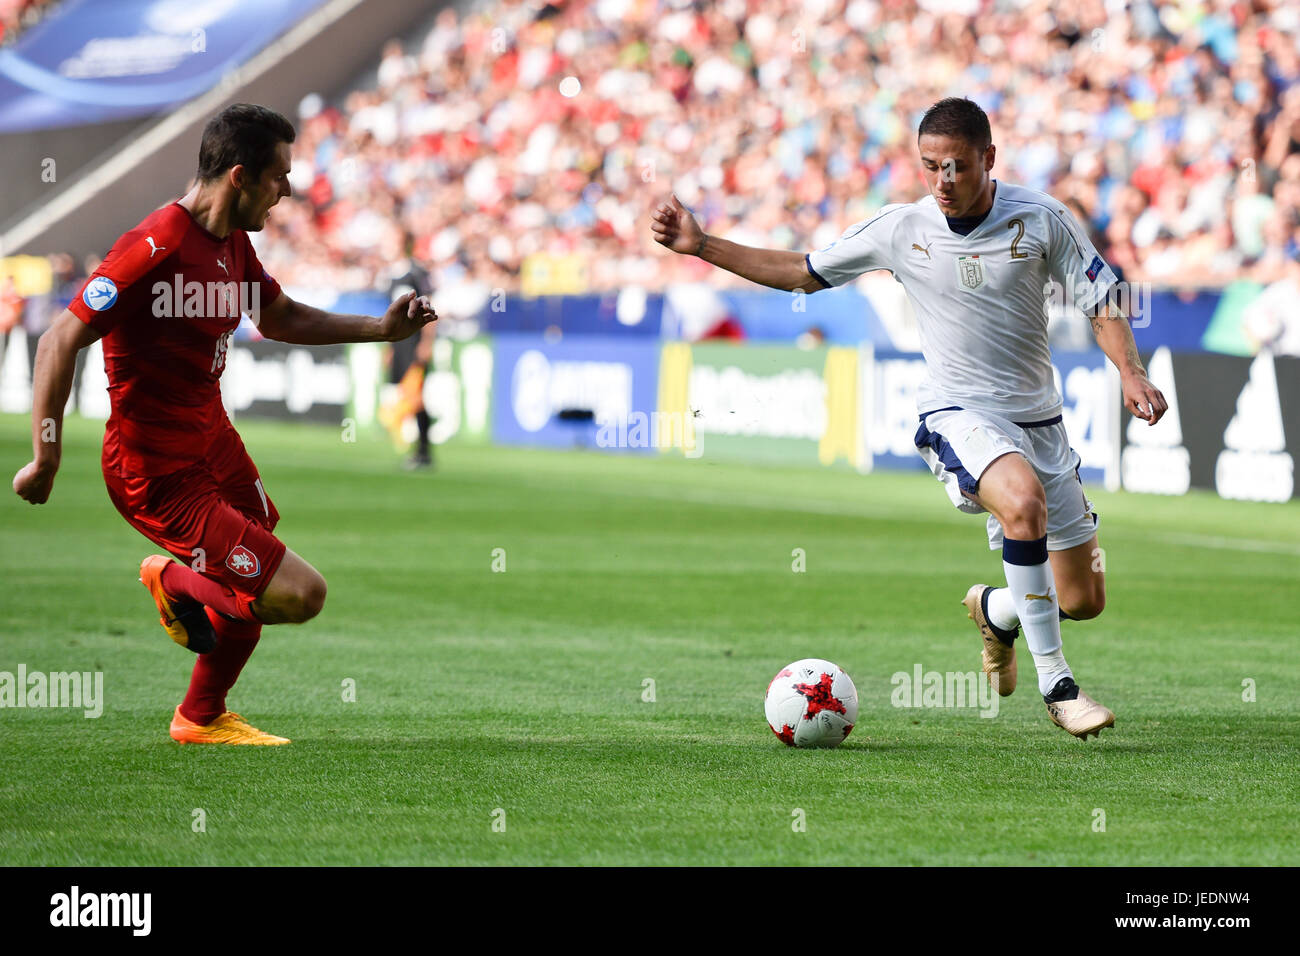 TYCHY, POLAND - JUNE 21, 2017: UEFA European Under-21 Championship  match group C between Czech Republic - Italy - Stock Image